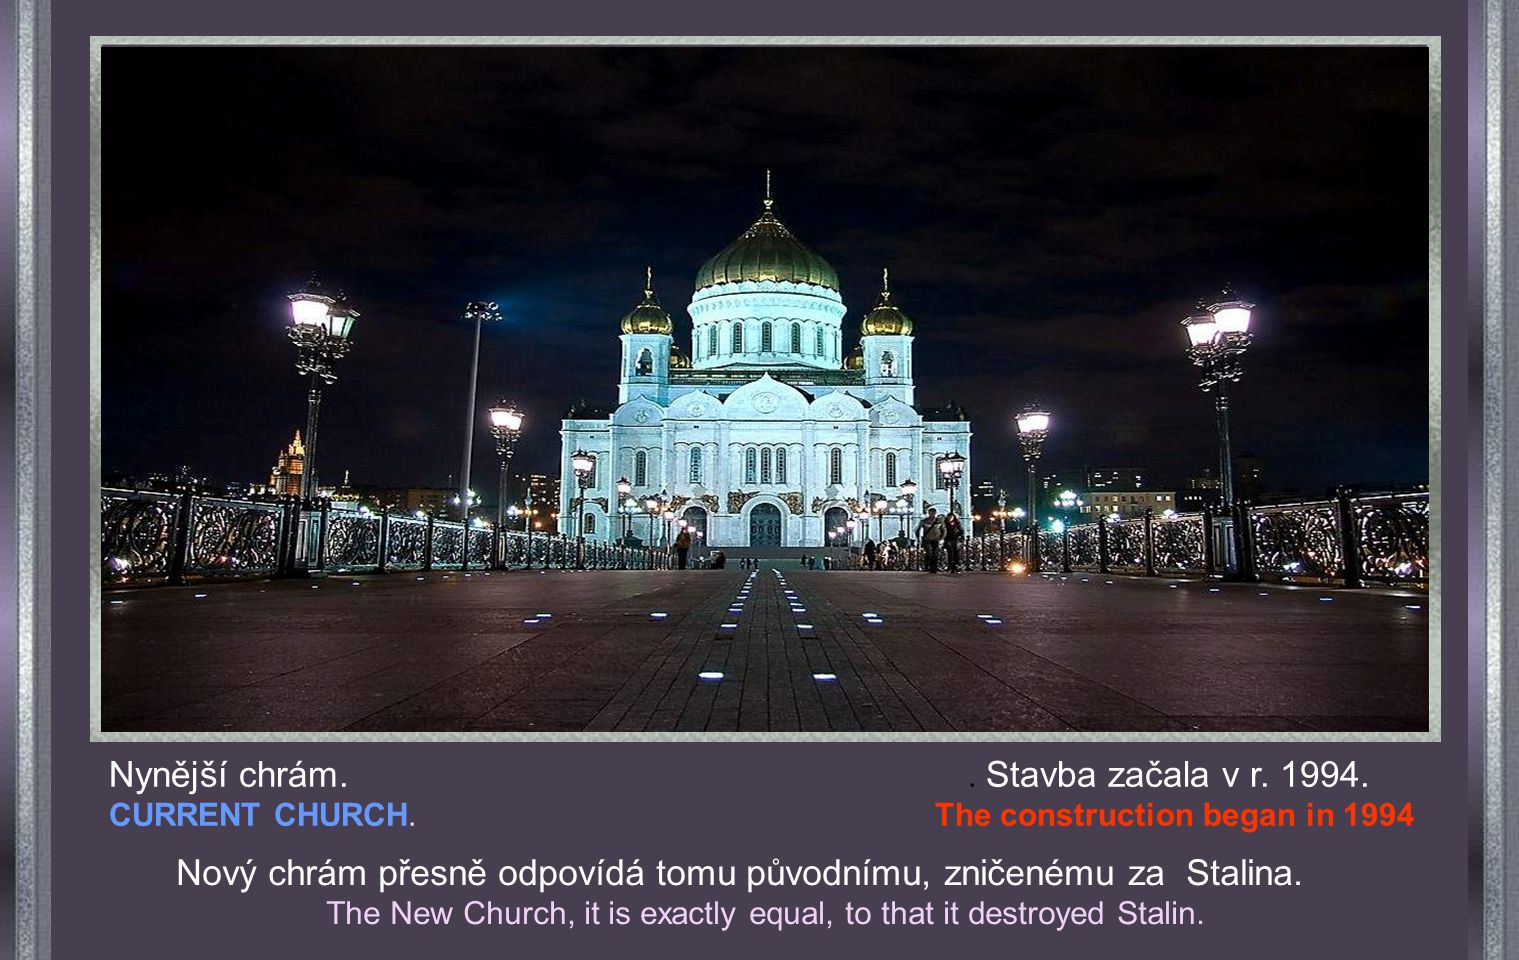 The New Church, it is exactly equal, to that it destroyed Stalin.